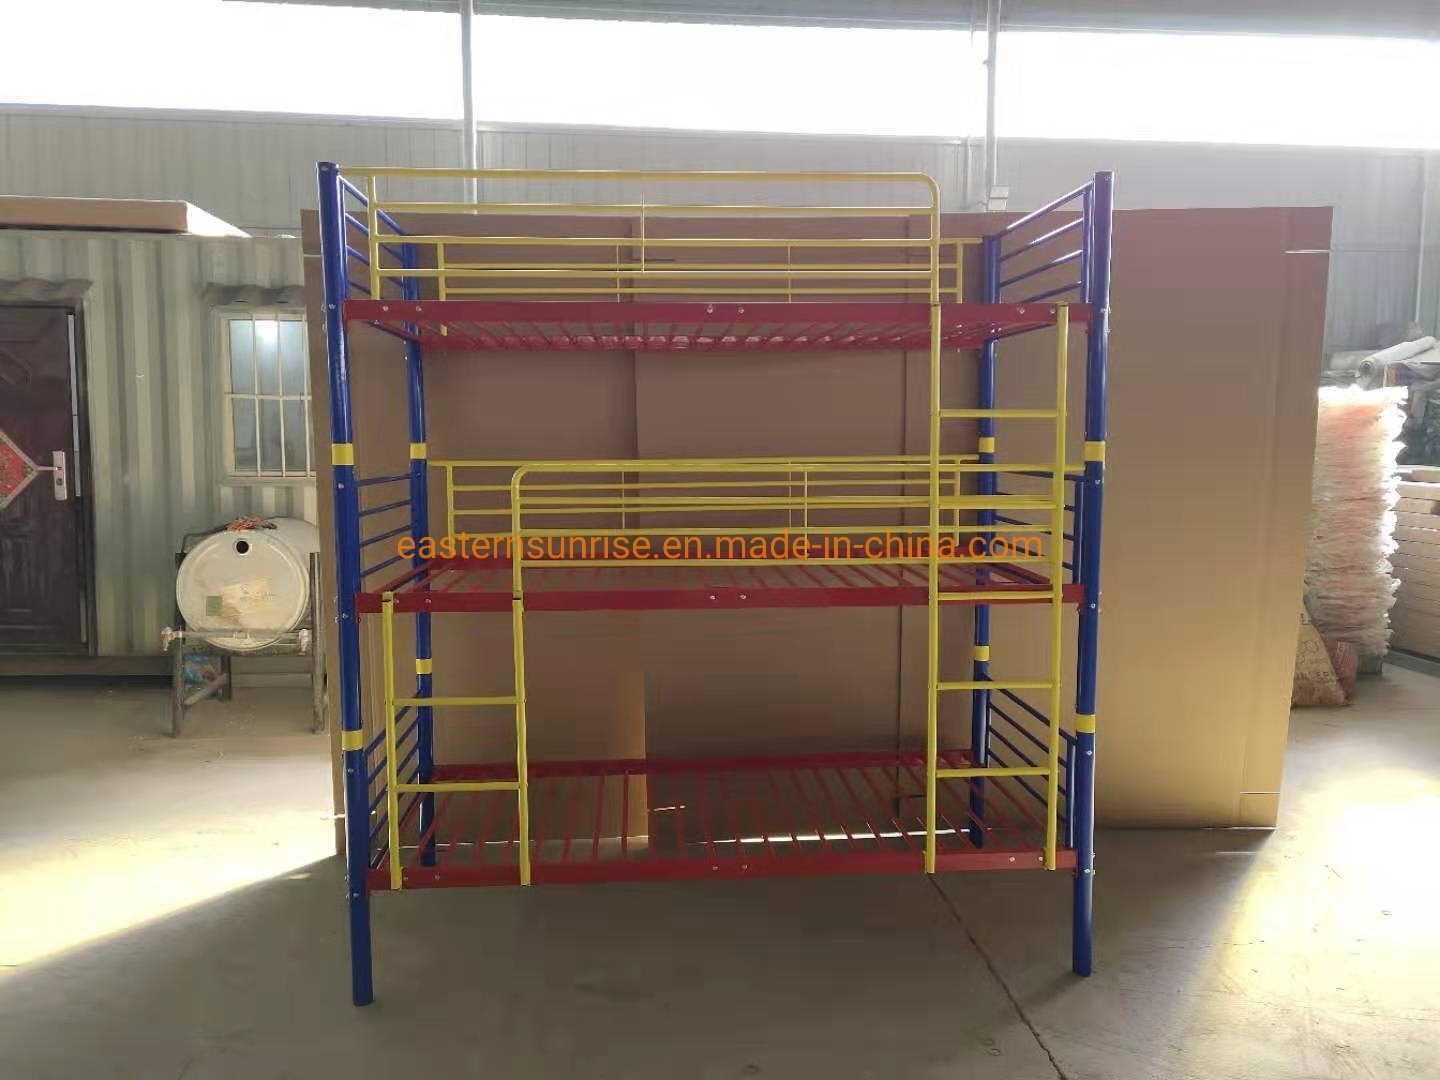 Picture of: China Living Room Furniture Set Metal Triple 3 Layers Bedroom Sets Bunk Beds China Metal Furniture Bunk Bed